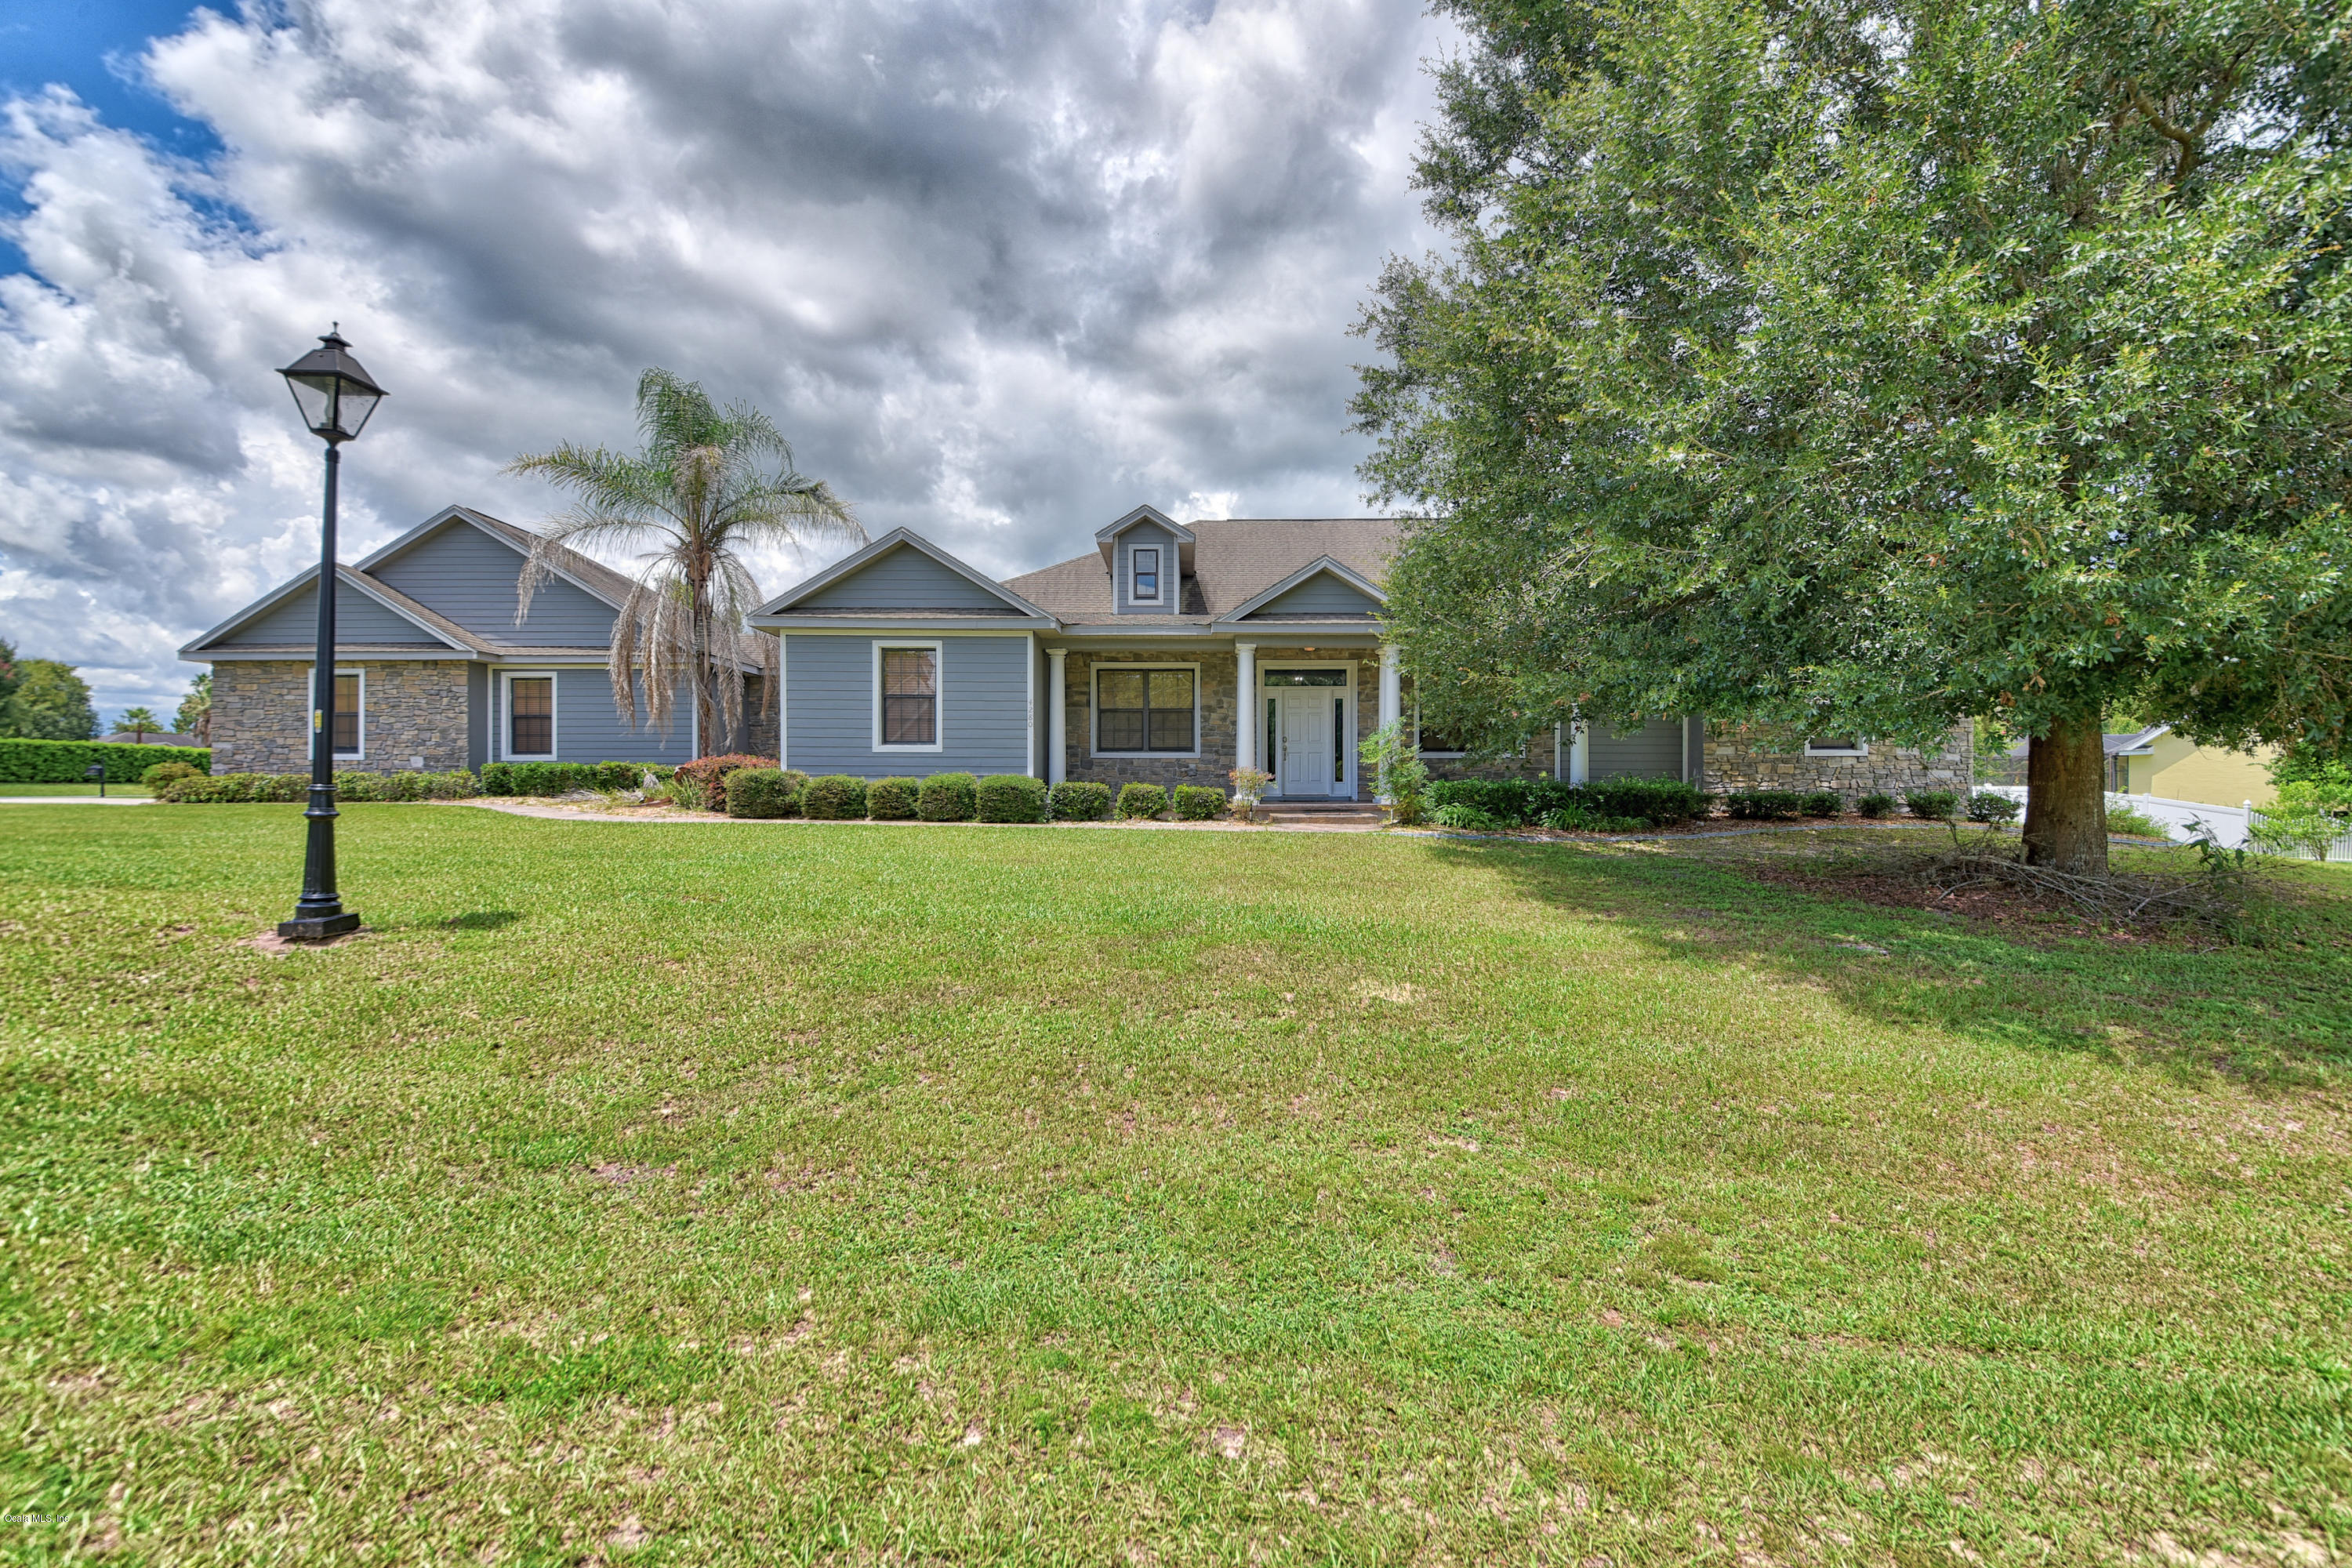 4280 SW 58TH AVENUE, OCALA, FL 34474